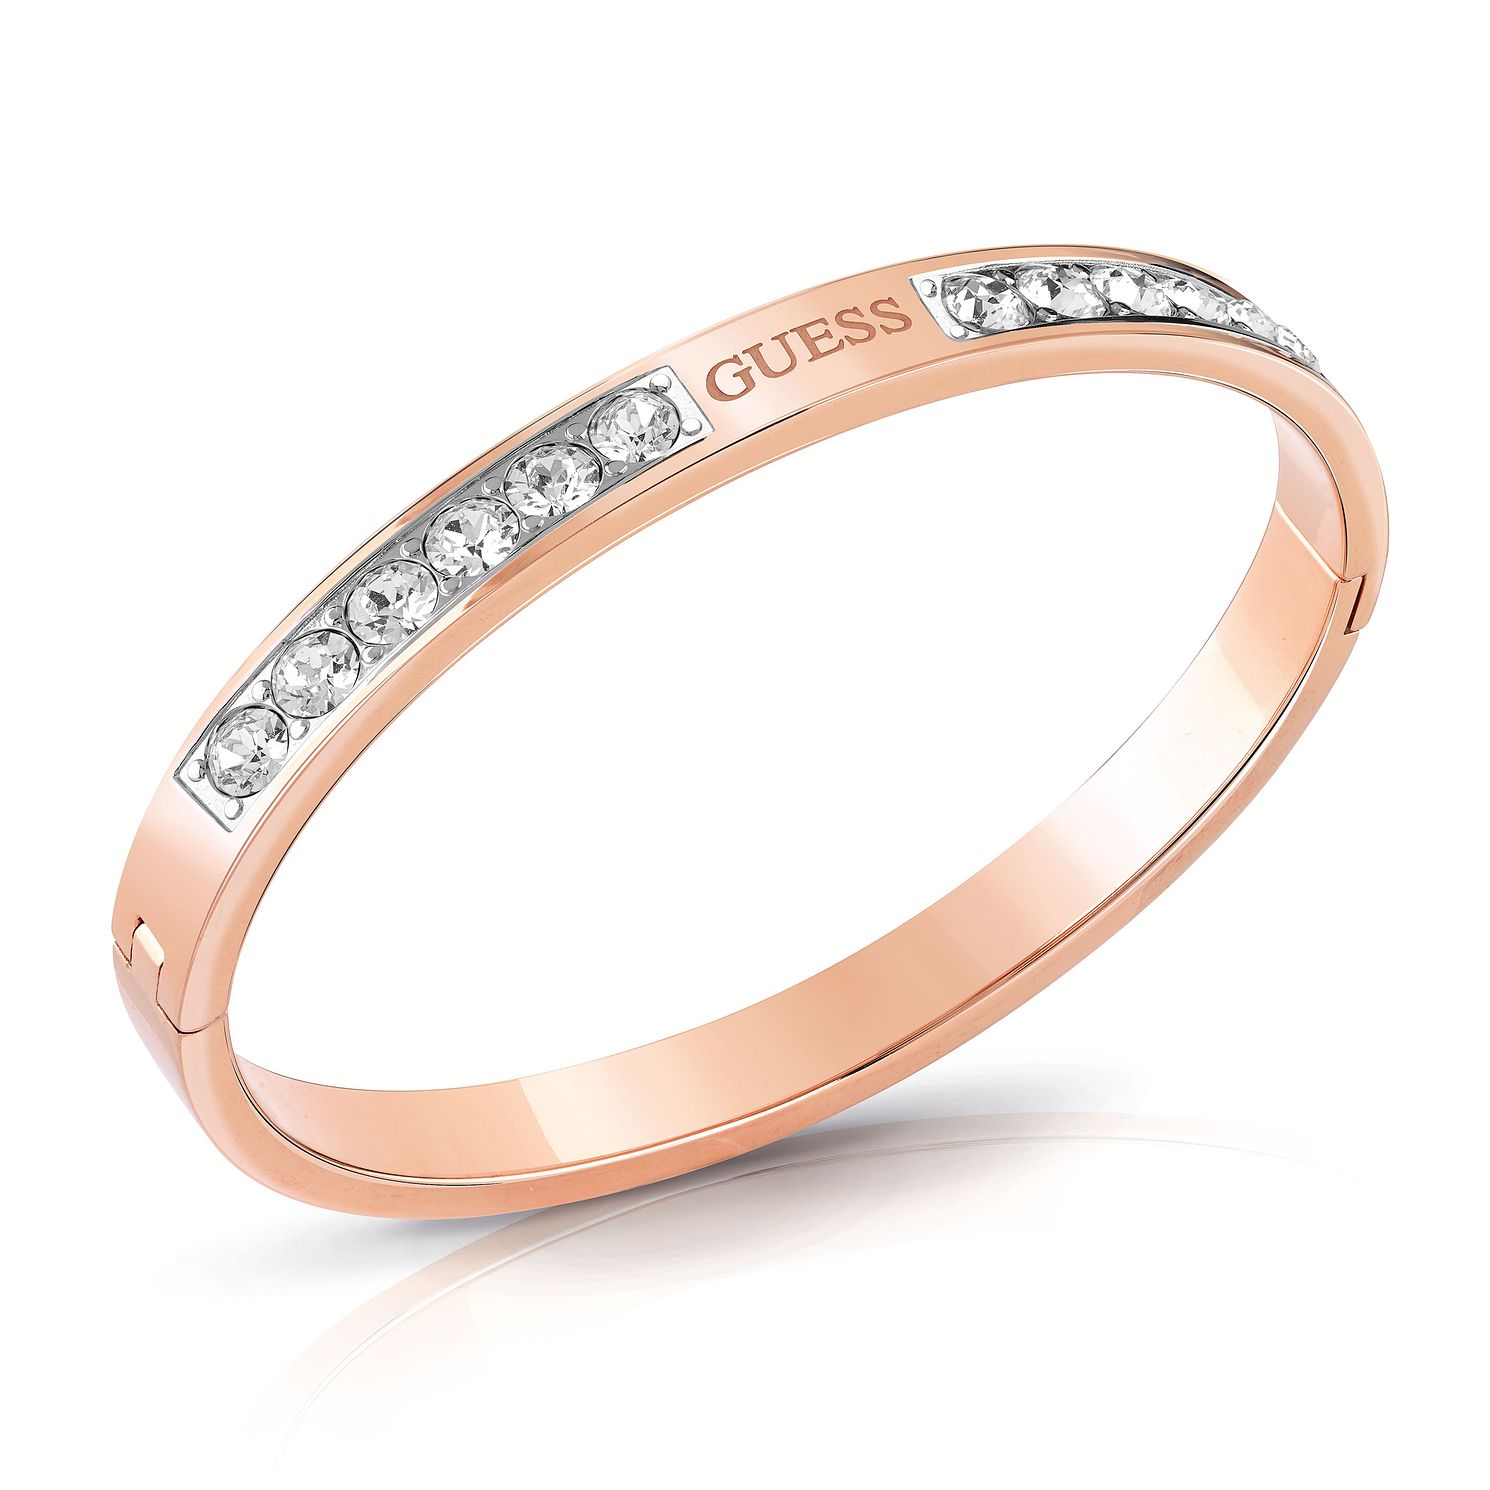 Guess Rose Gold Tone Swarovski Crystal Bangle - Product number 4104781